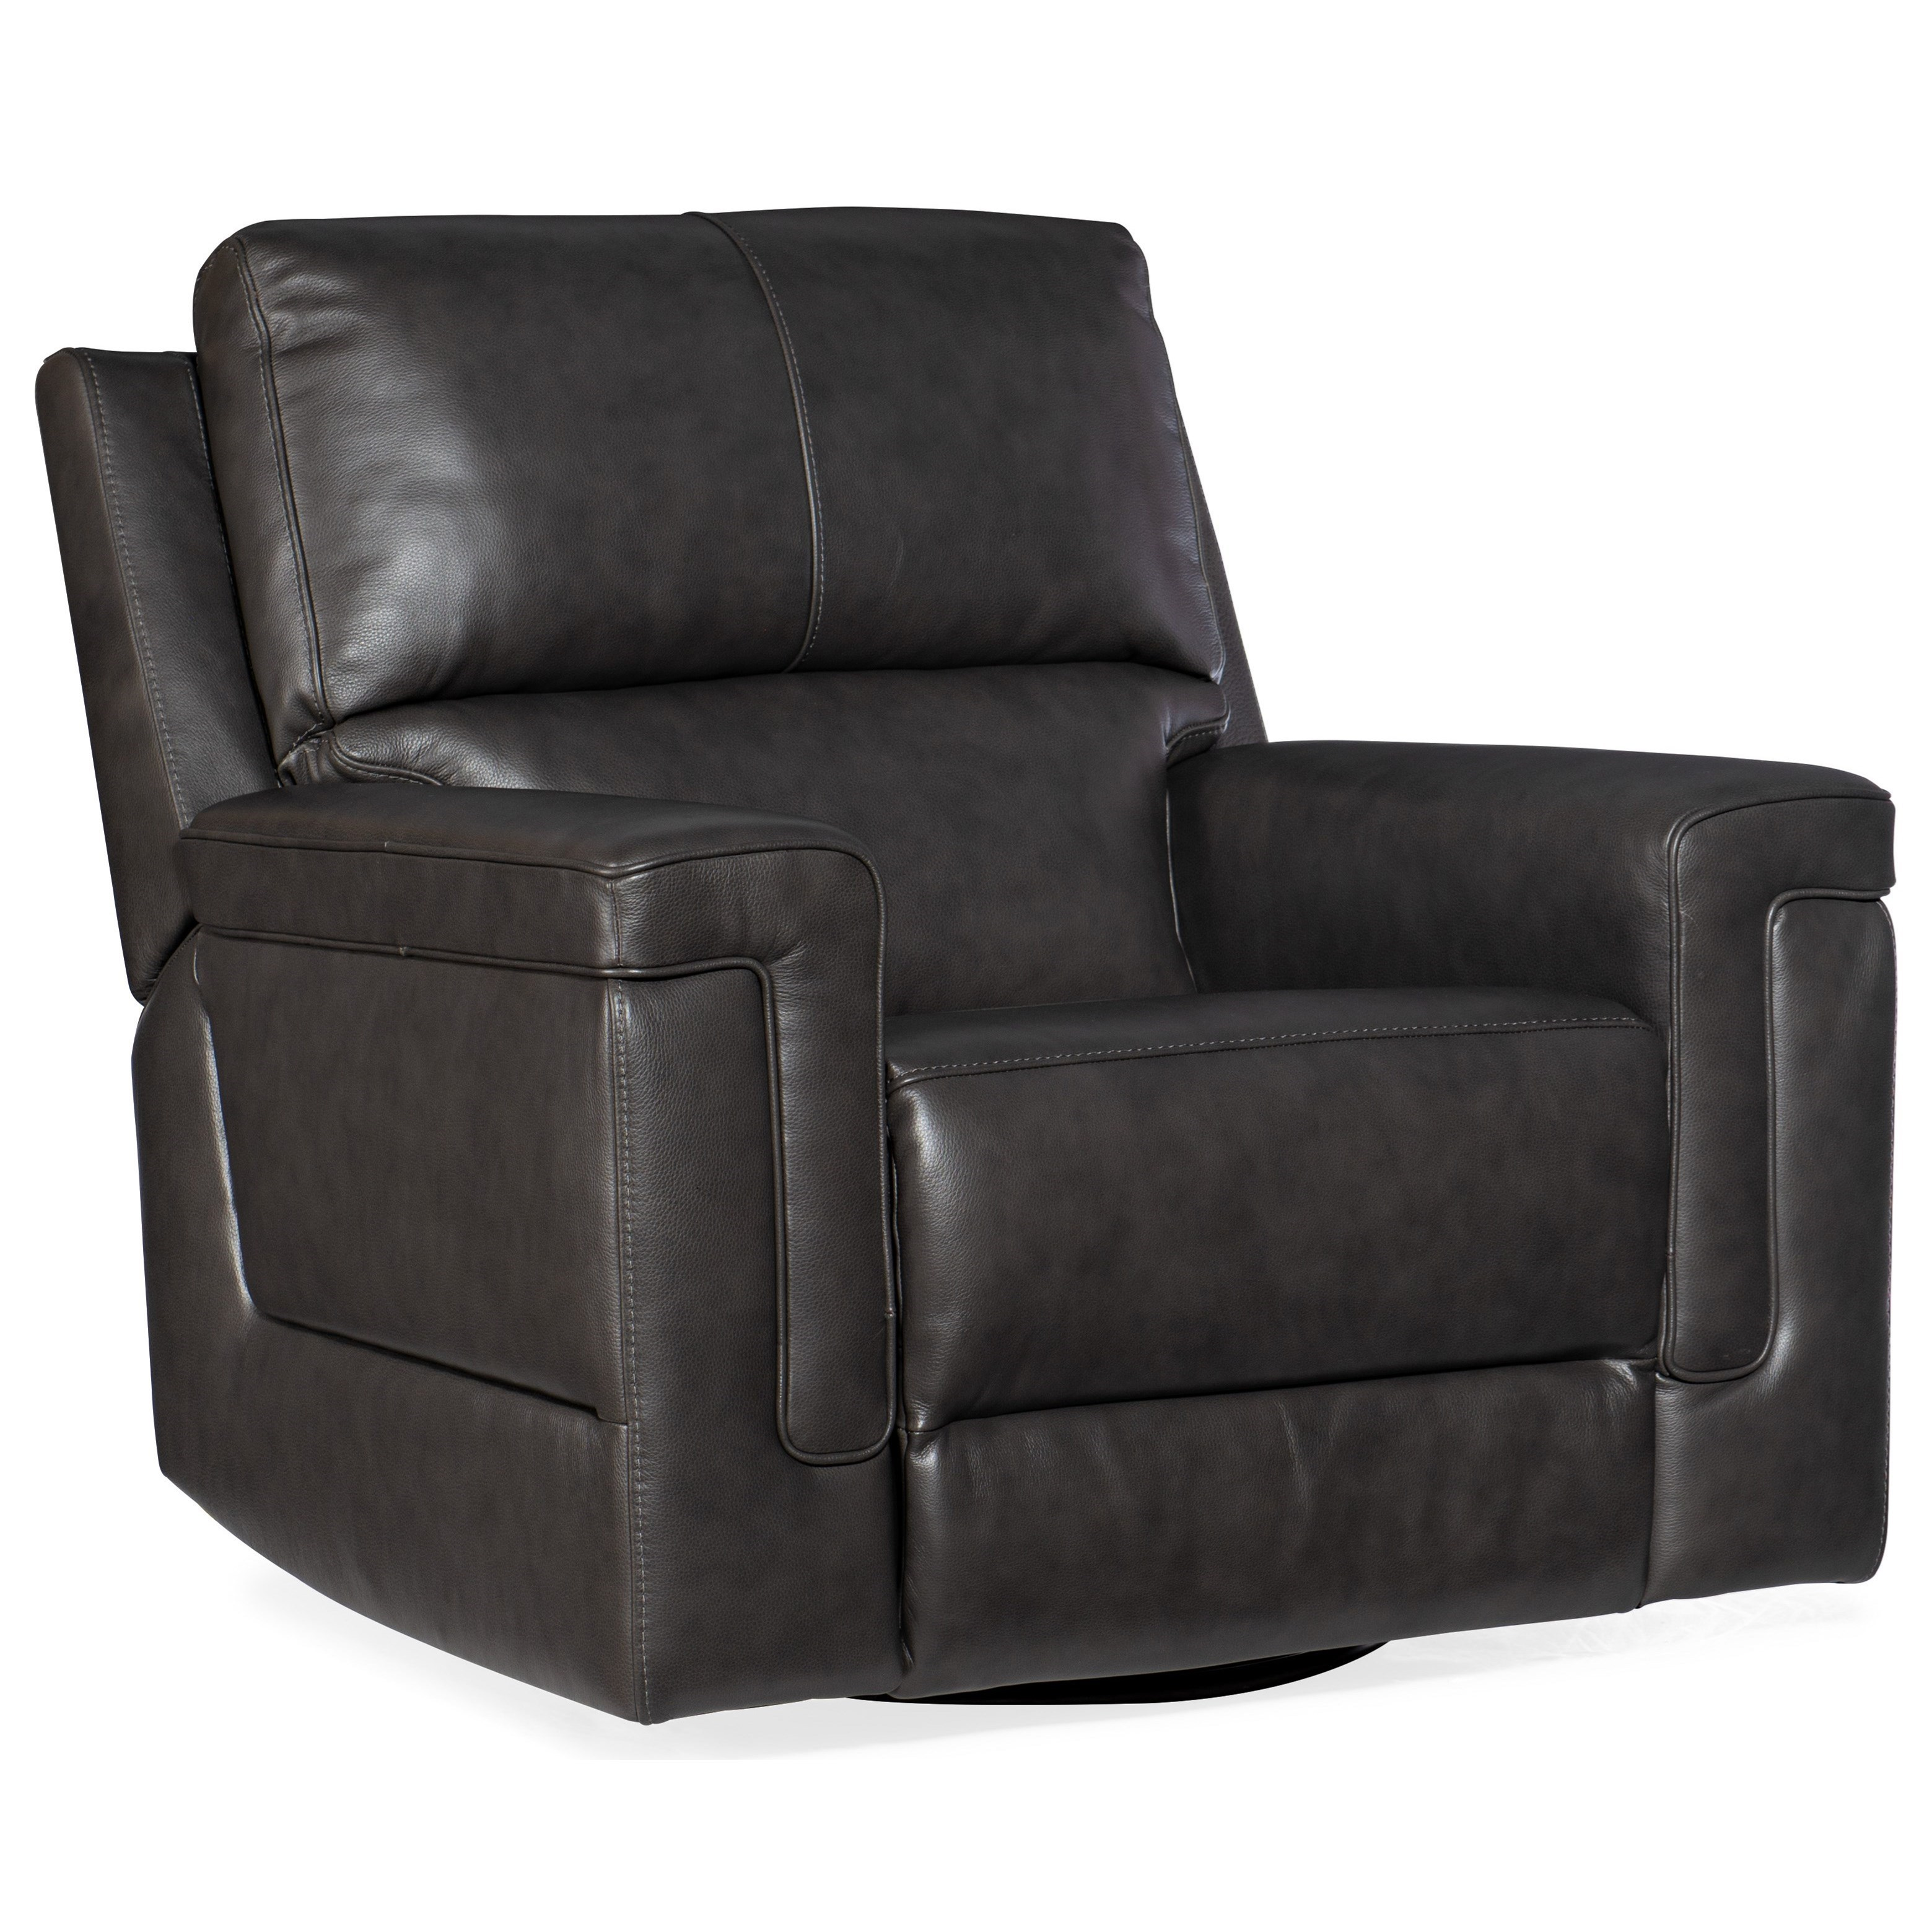 Gable Power Swivel Glider Leather Recliner by Hooker Furniture at Baer's Furniture